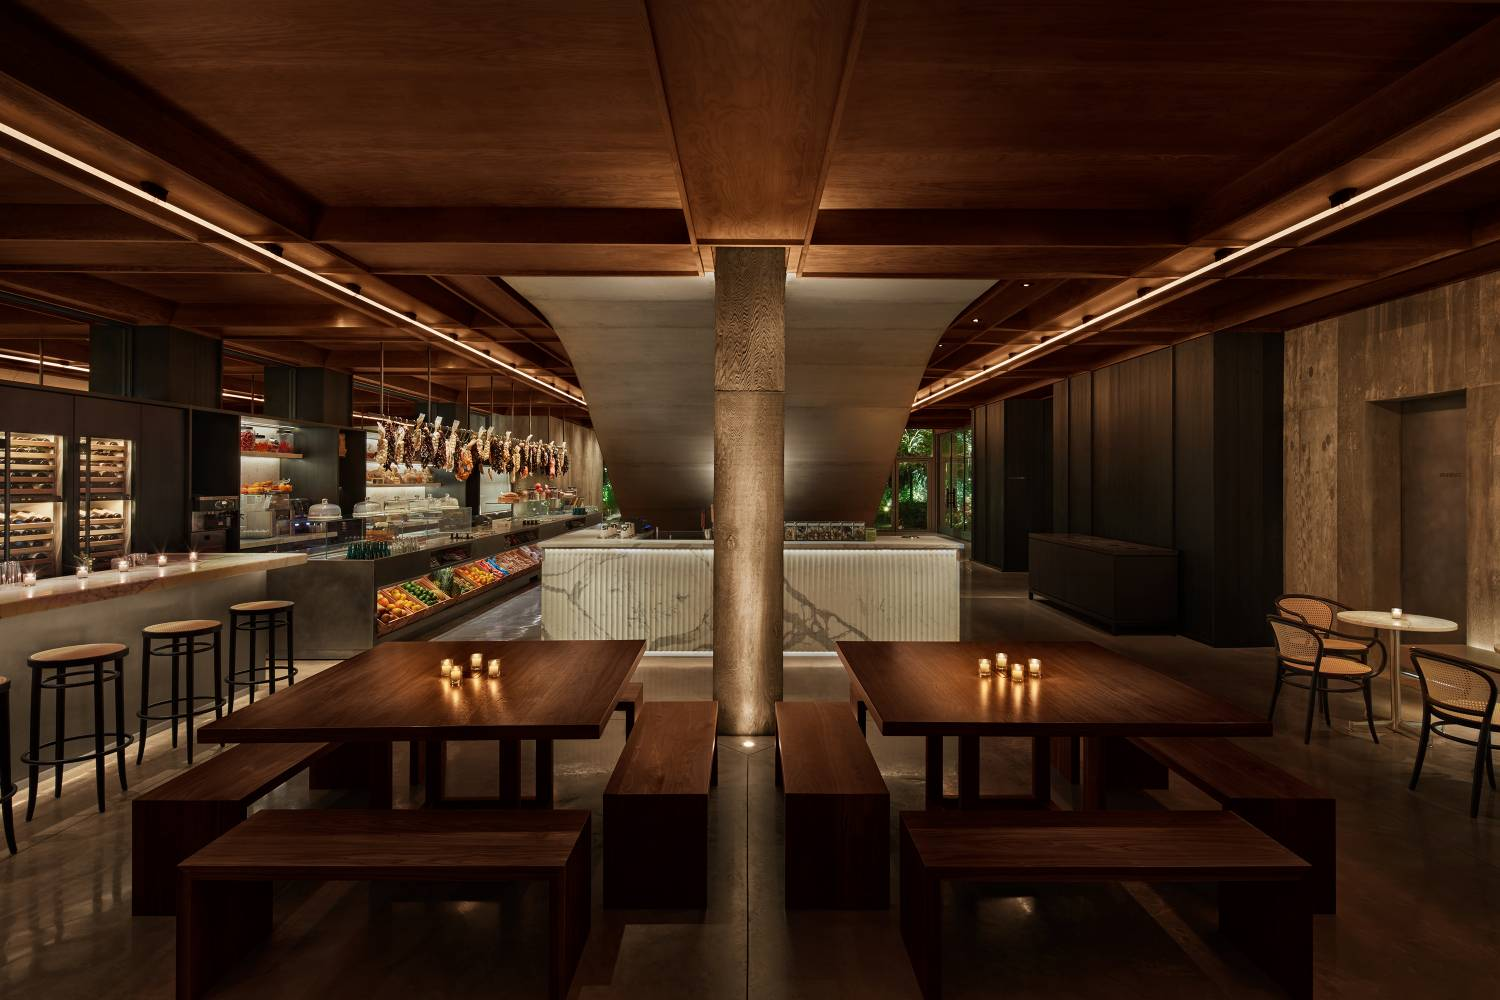 , Public Kitchen, AMERICAN ACADEMY OF HOSPITALITY SCIENCES